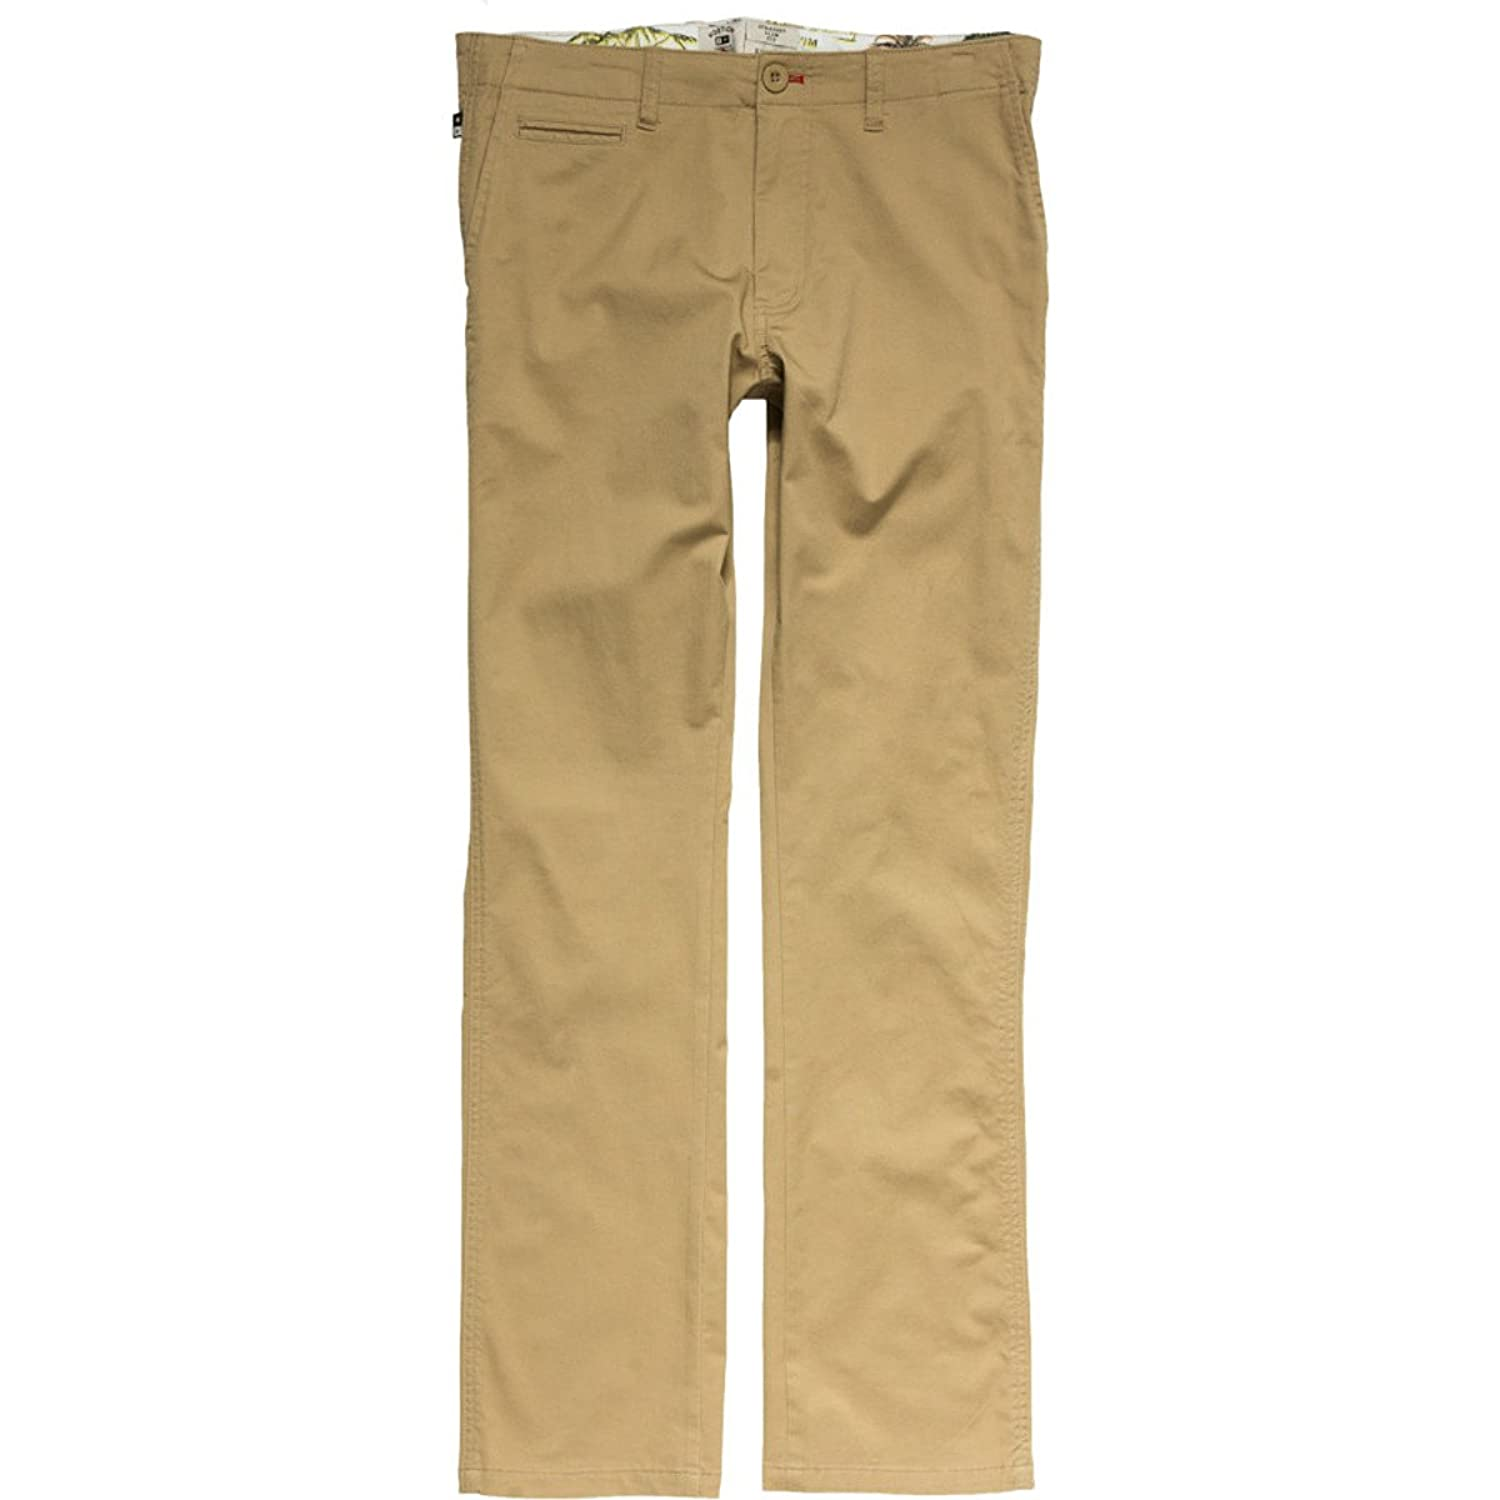 Fourstar Clothing Men's Koston Straight Slim Chino Pants